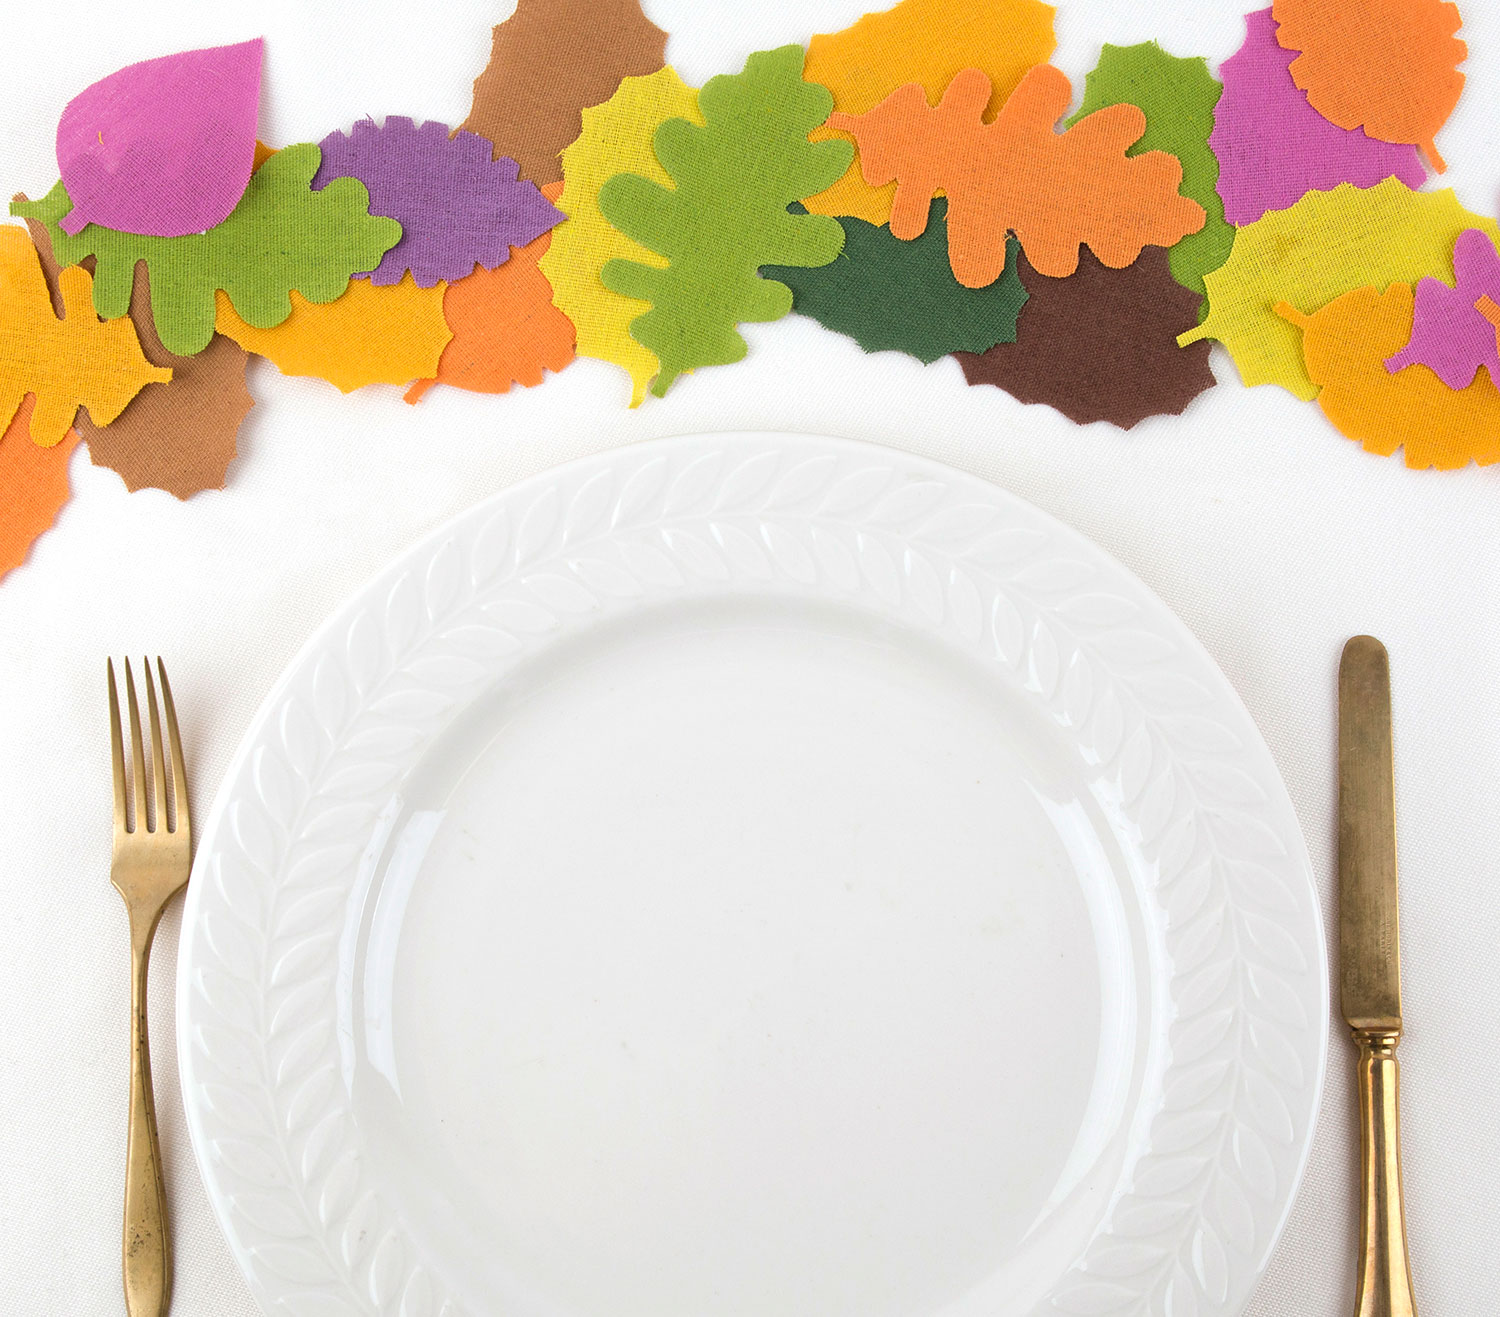 Thanksgiving crafts, ideas - Leaves Table Runner